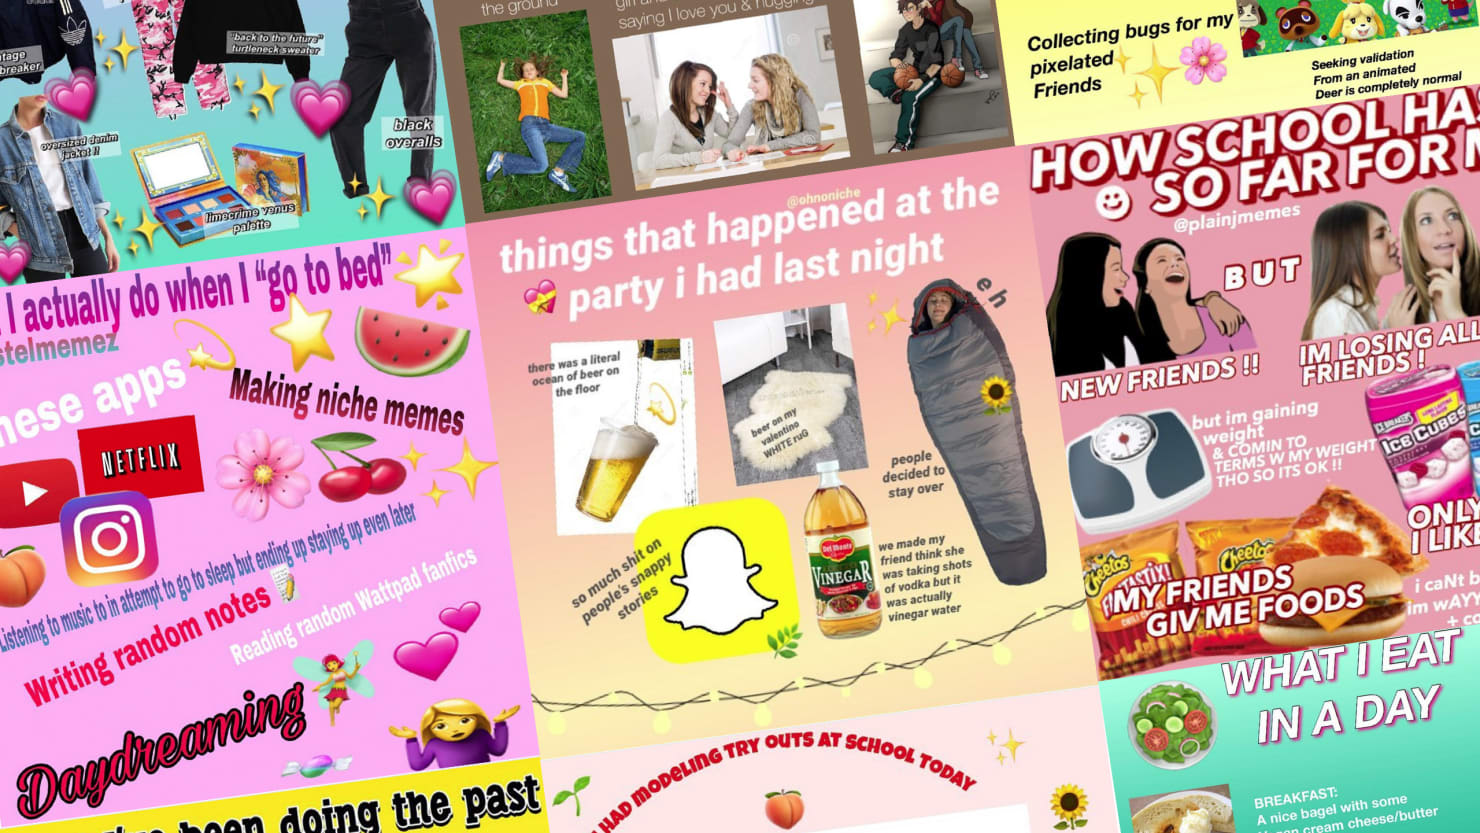 Niche Memes Are The Secret Clip Art Diaries Teens Are Posting On